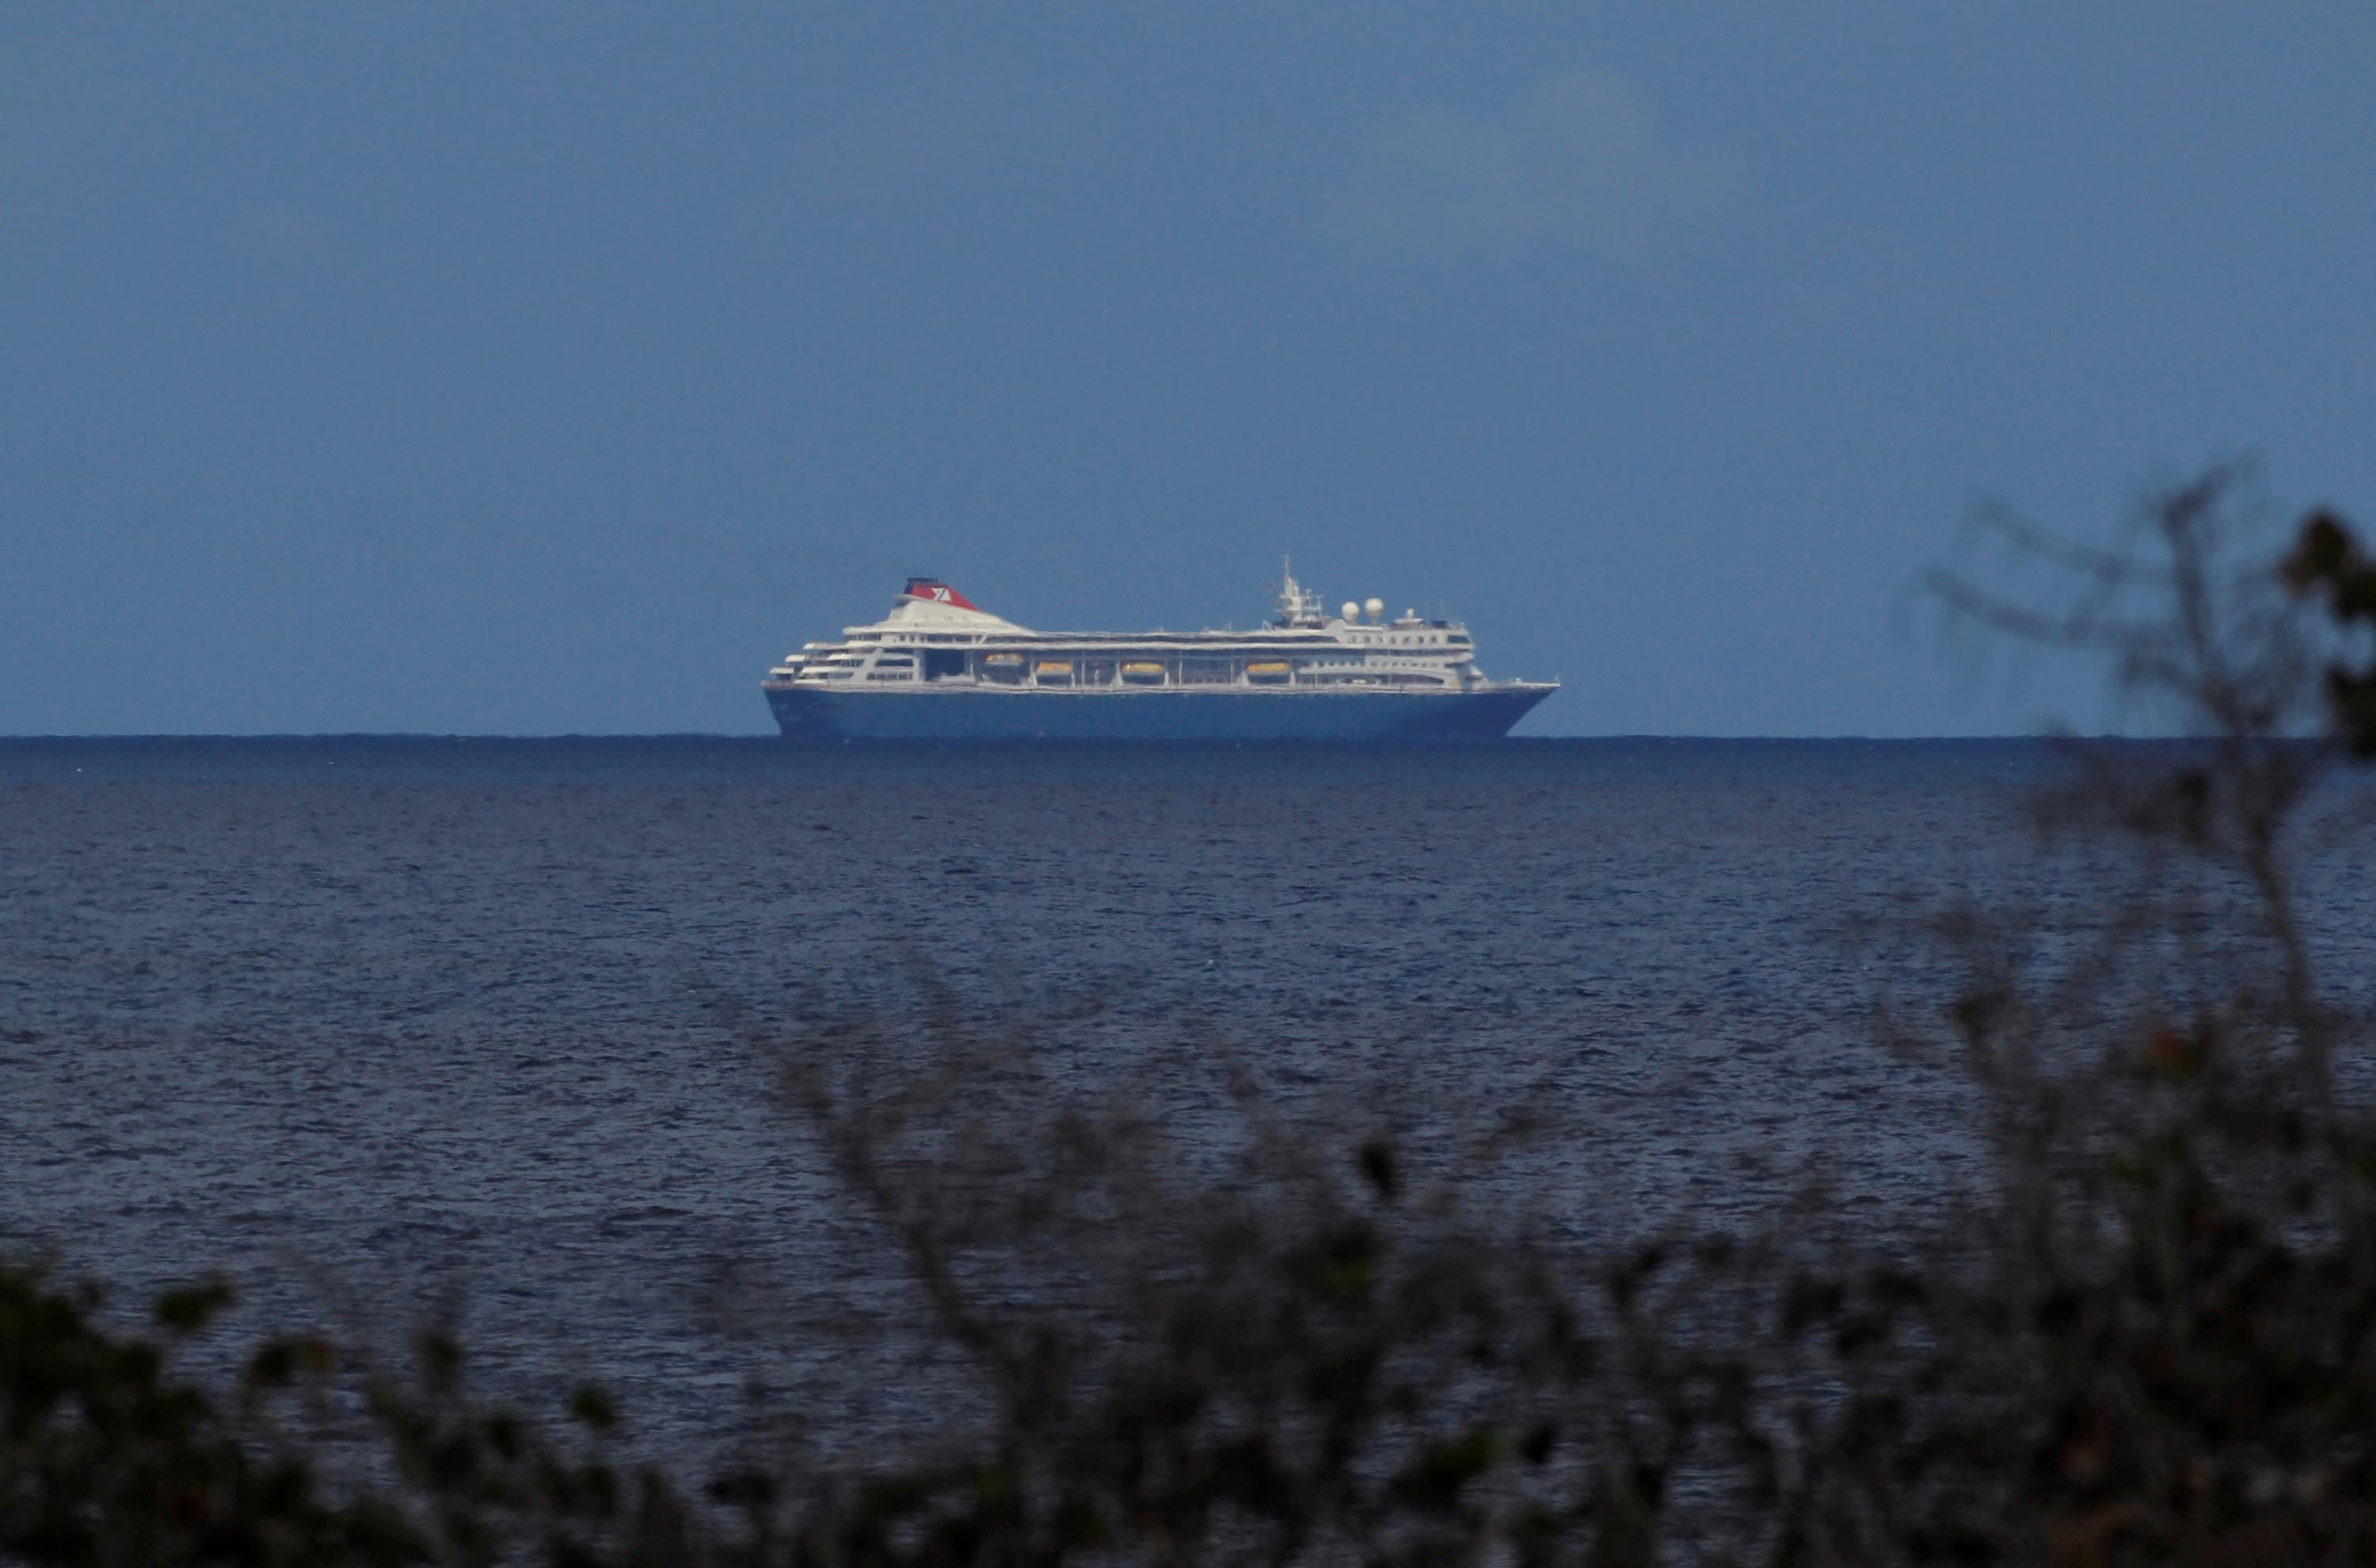 The British cruise ship MS Braemar is seen off the coast of Havana, Cuba, on March 17.